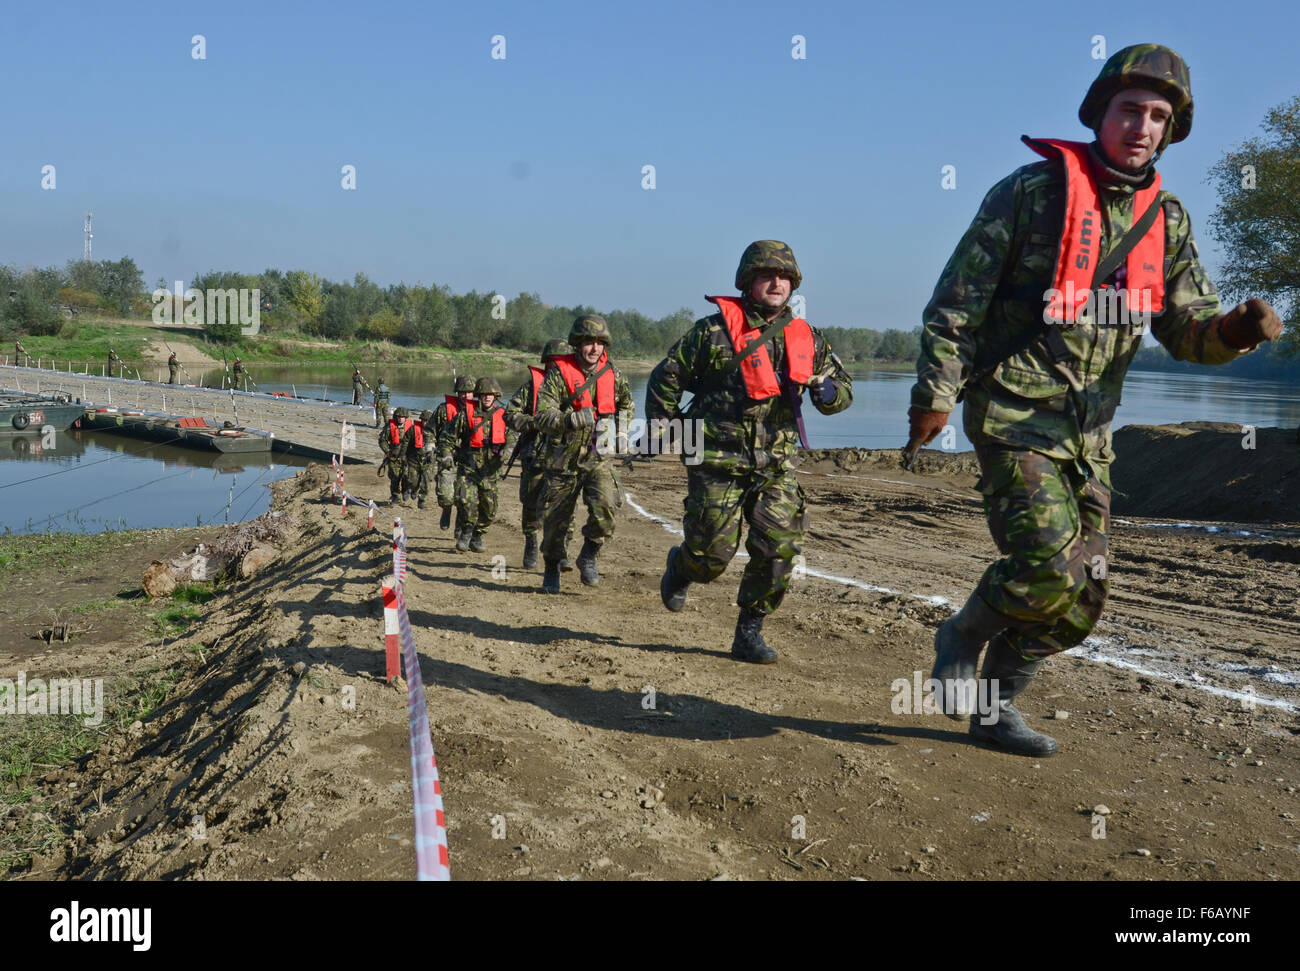 Romanian Soldiers run up the hill in a single file near the Mures River as part of the defense demonstration during - Stock Image